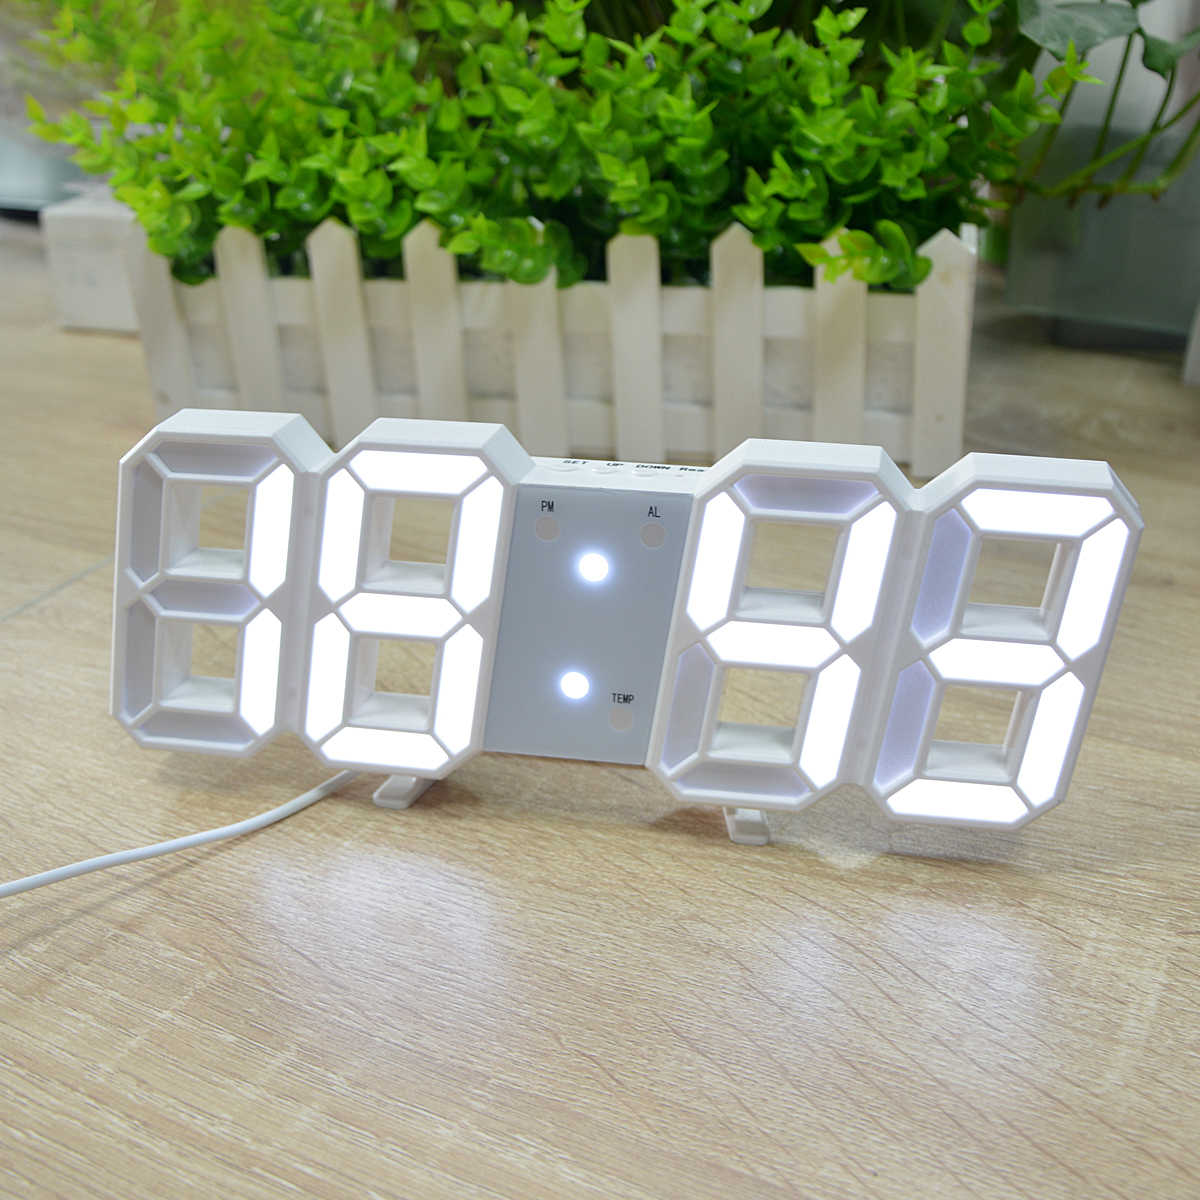 LED Table Lamps Creative Digital Clock Snooze Wake up Light Night Induction Light Temperature Display Bedside Desk Table Lamp